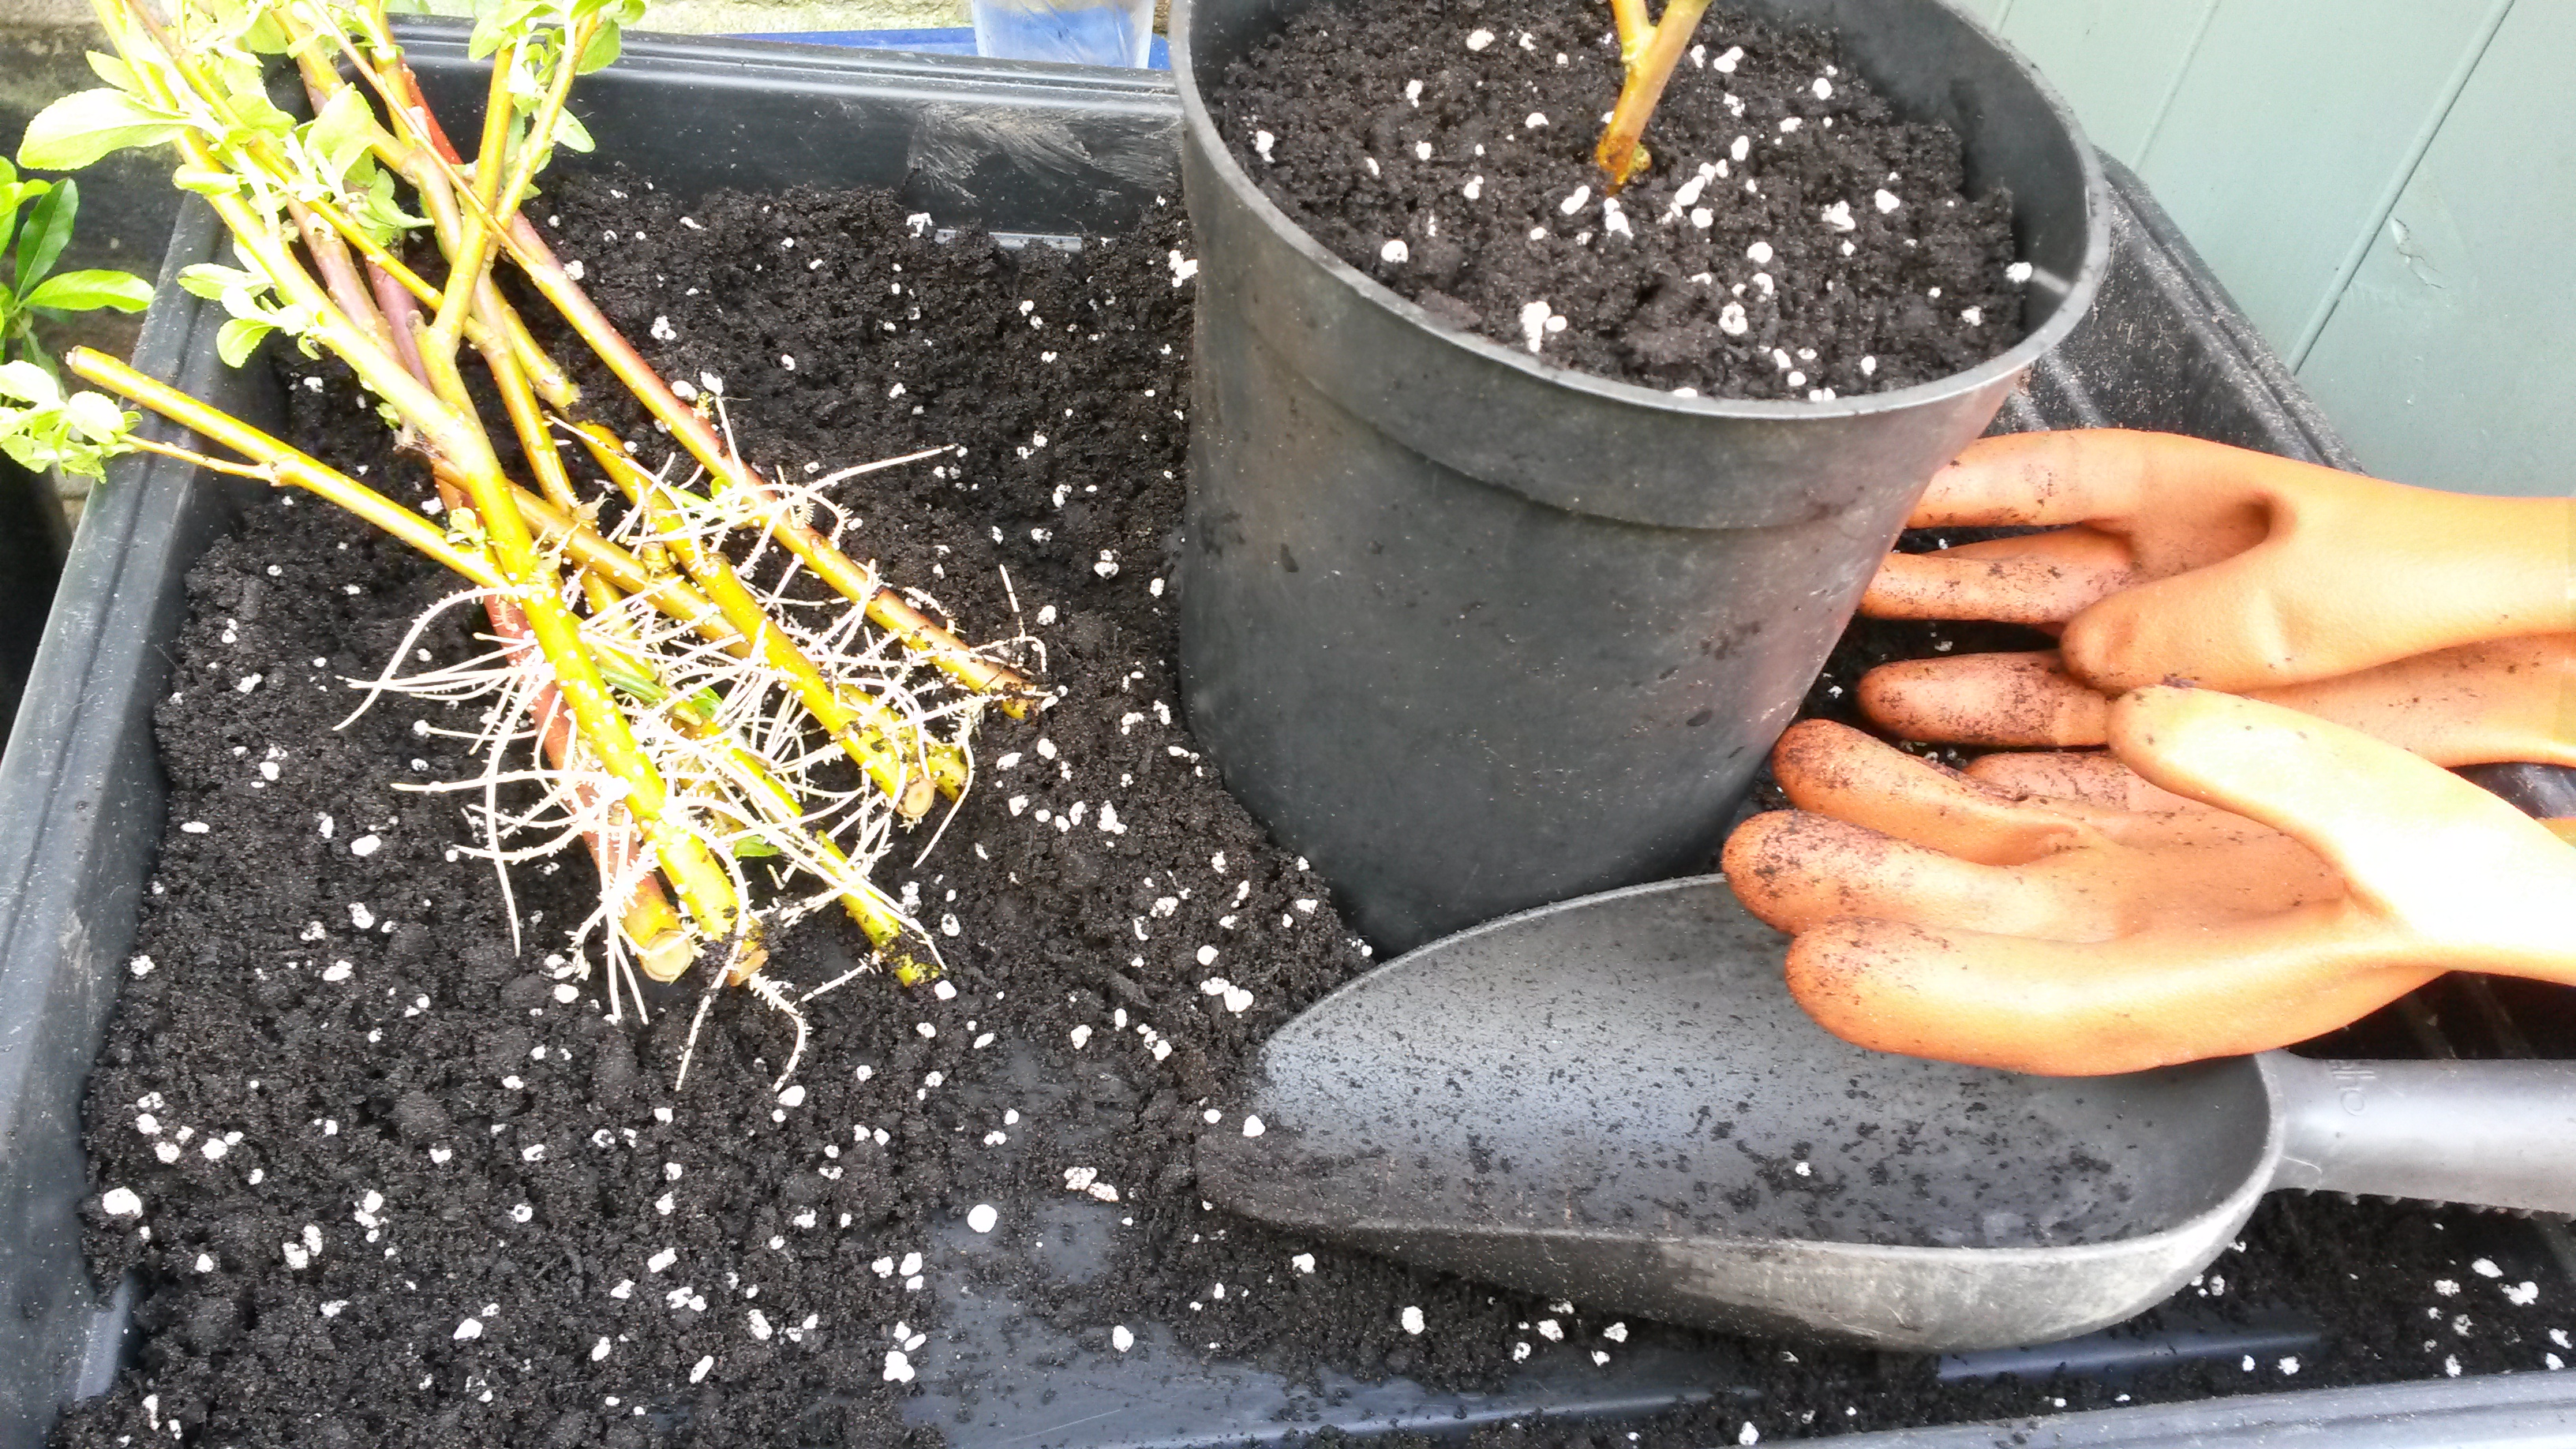 Potting up hardwood cuttings of Salix (Willow) which, after a few days in water, have struck impressively vigorous roots